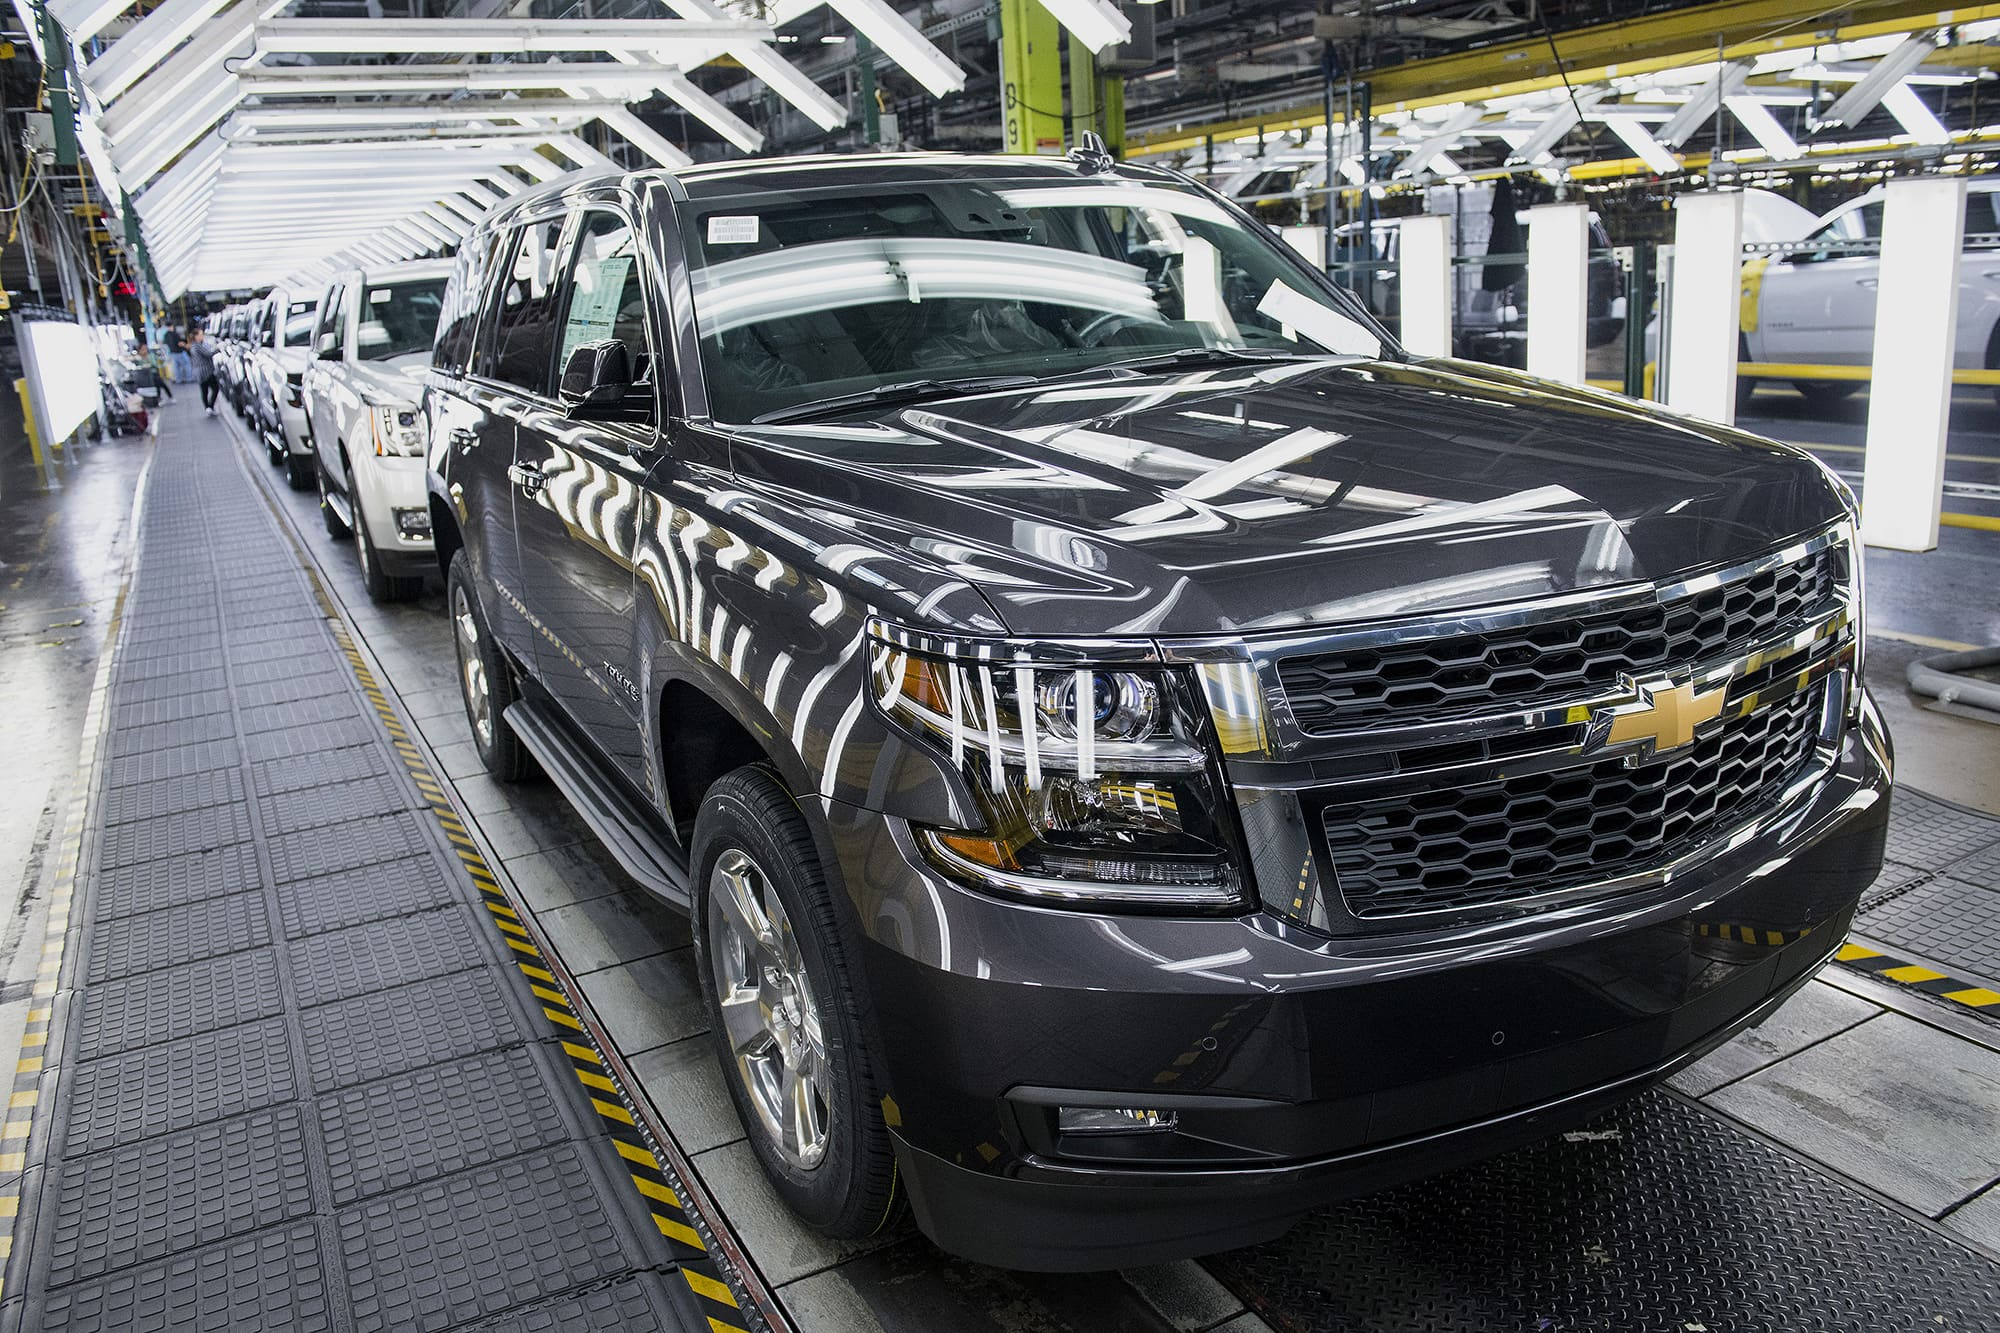 UAW officials want GM to close SUV plant in Texas due to coronavirus